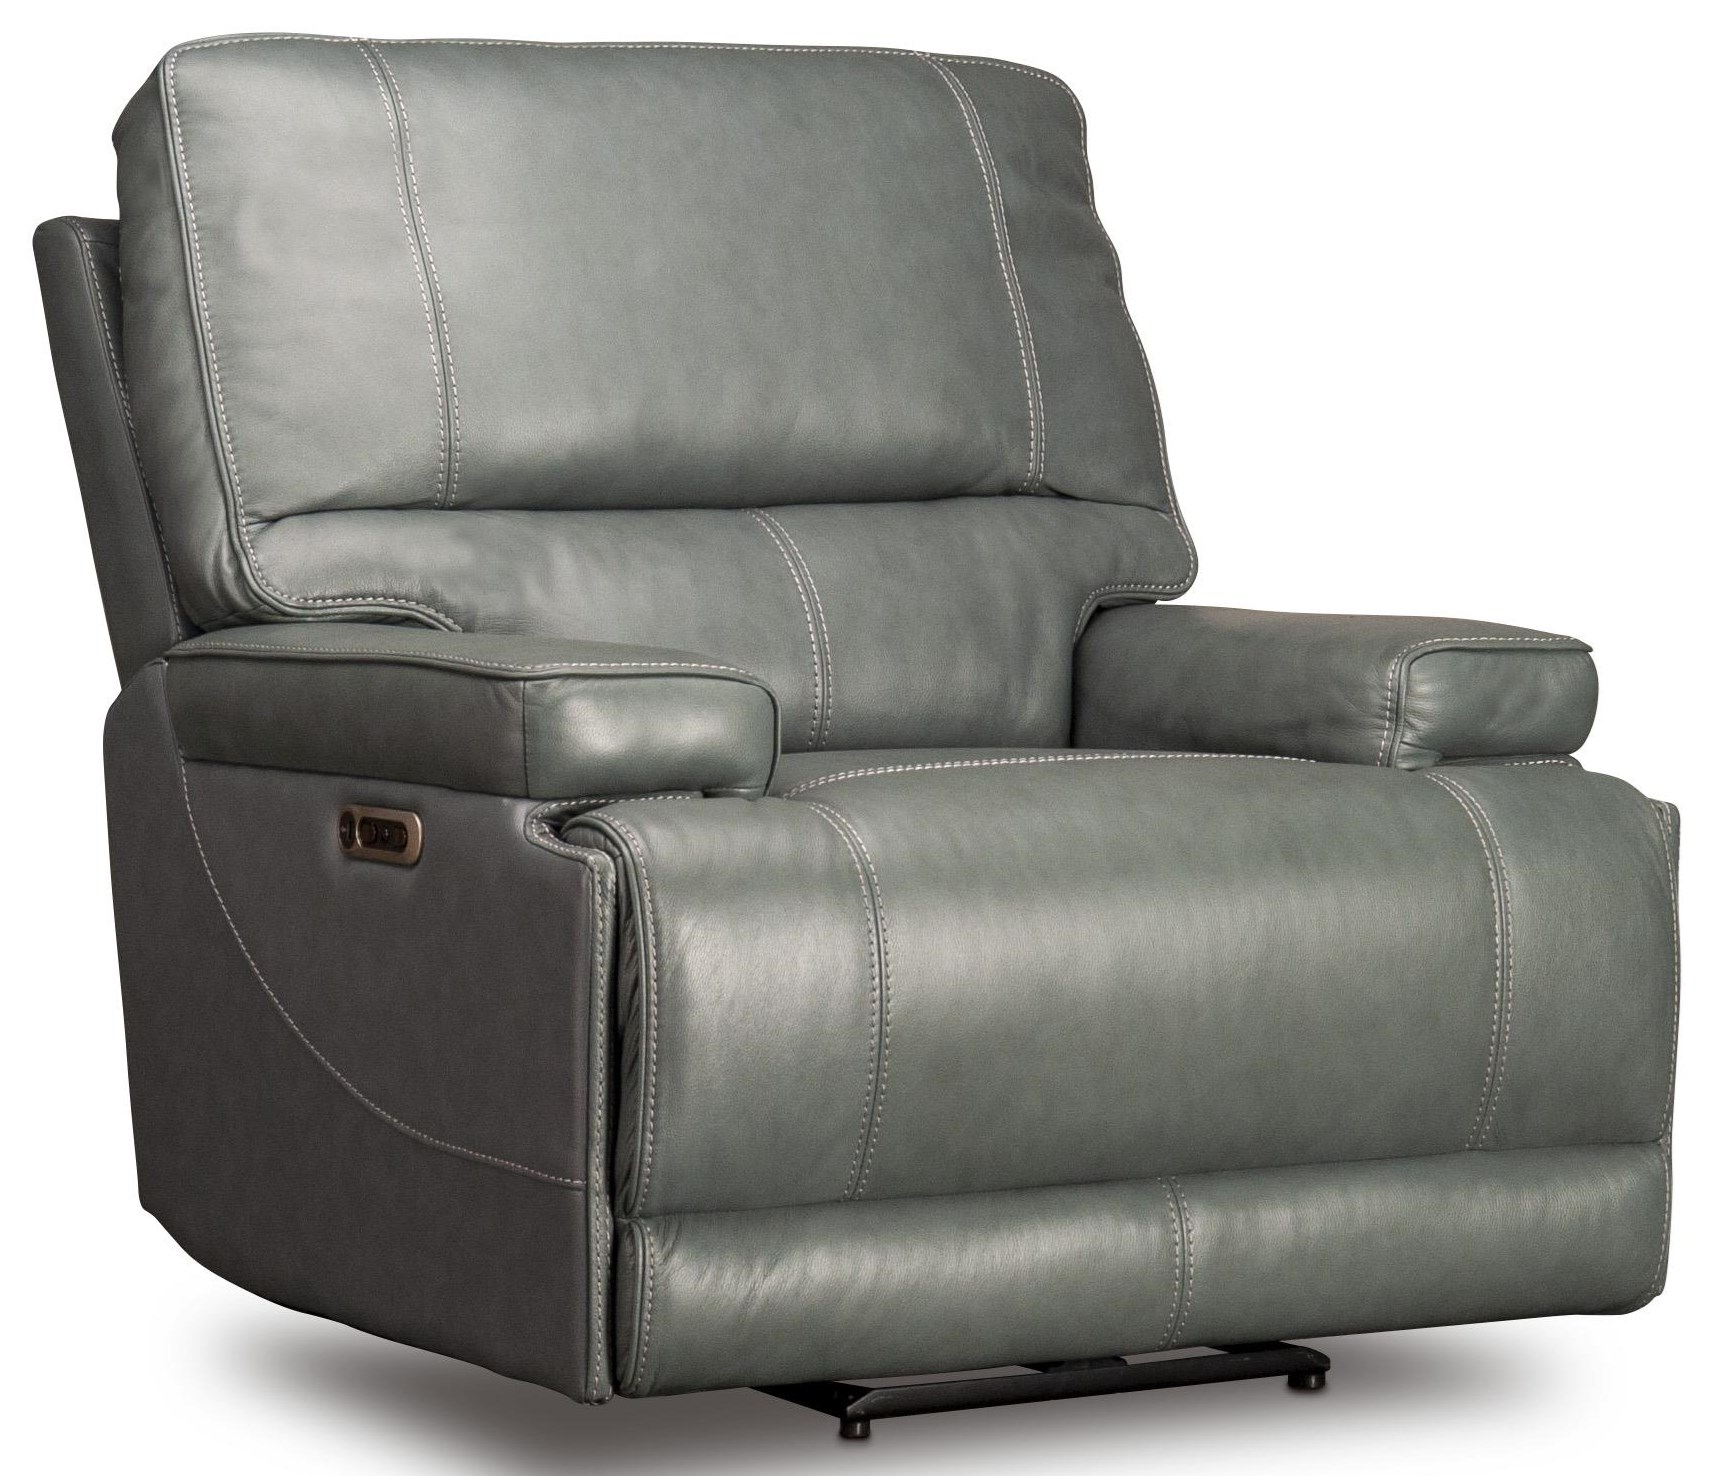 Wade Wade Leather Match Power Recliner by Parker House at Morris Home